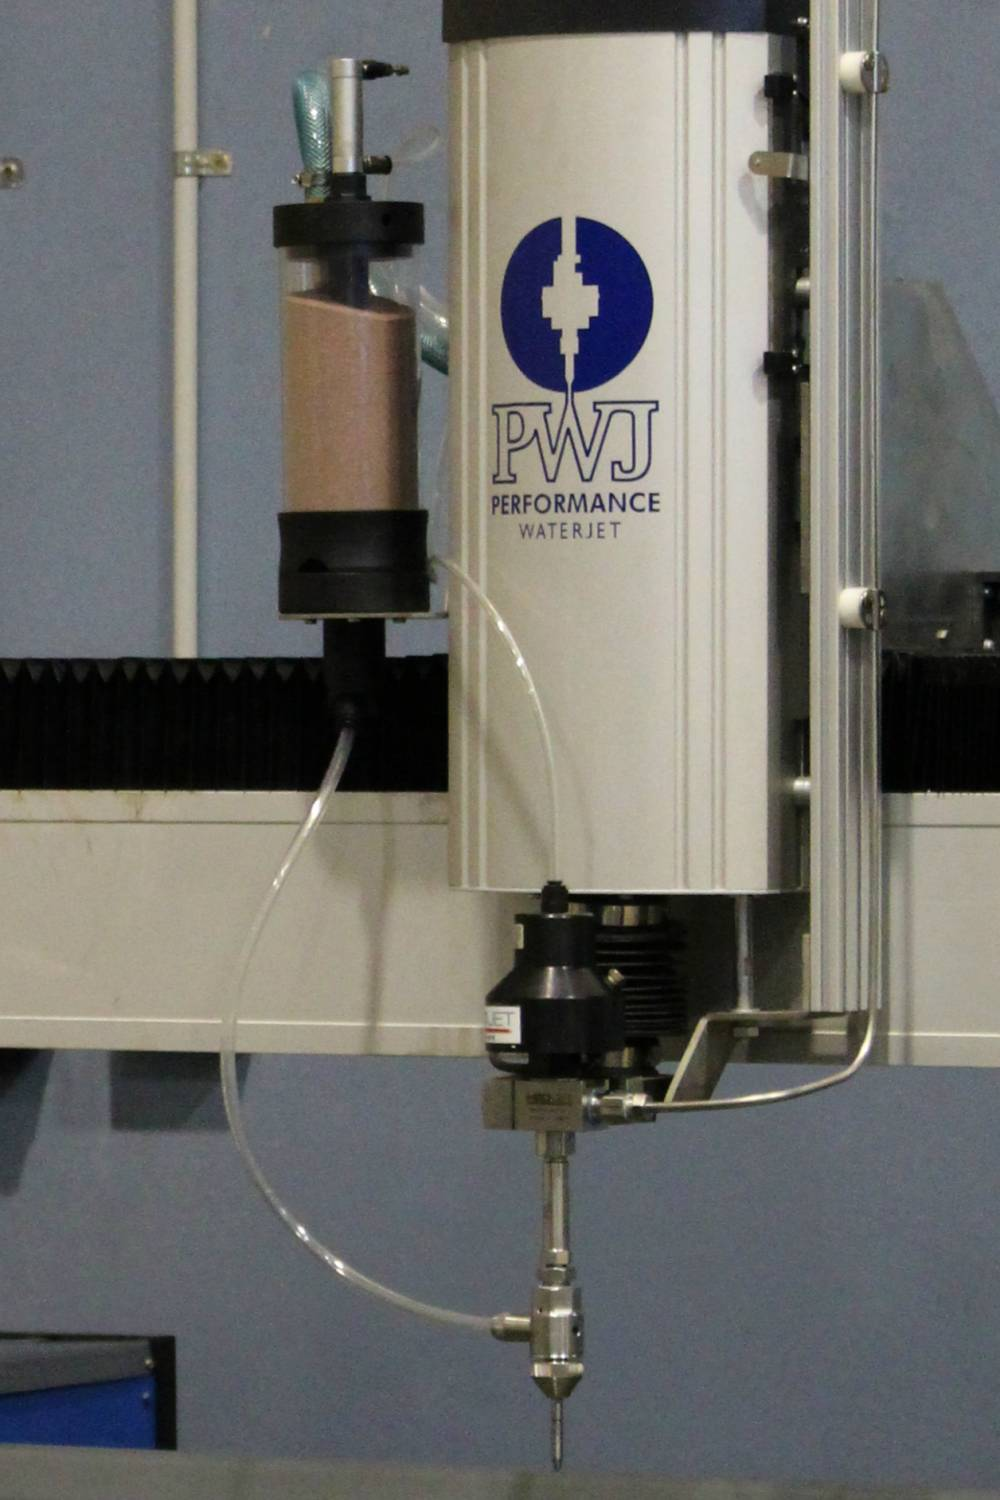 Abrasive Metering Systems - Performance Waterjet PWJ